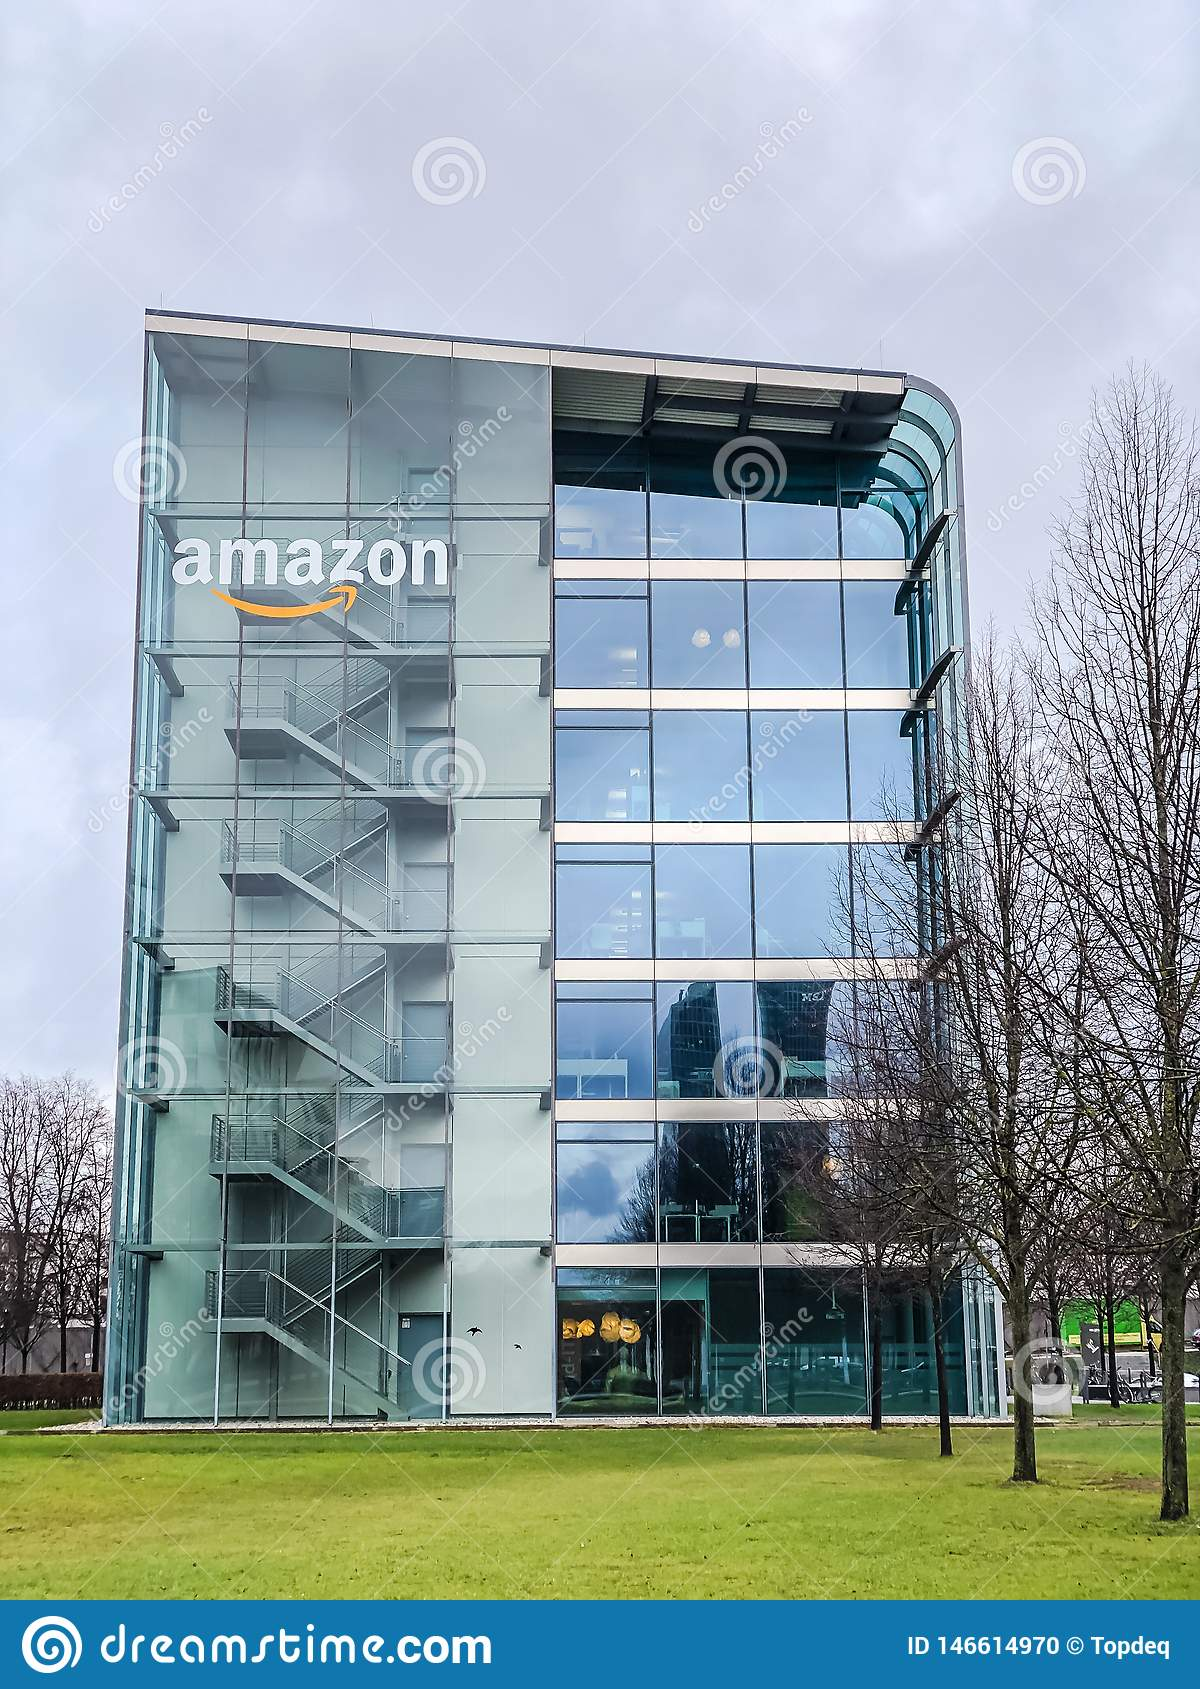 Amazon logo at office building, Munich Germany